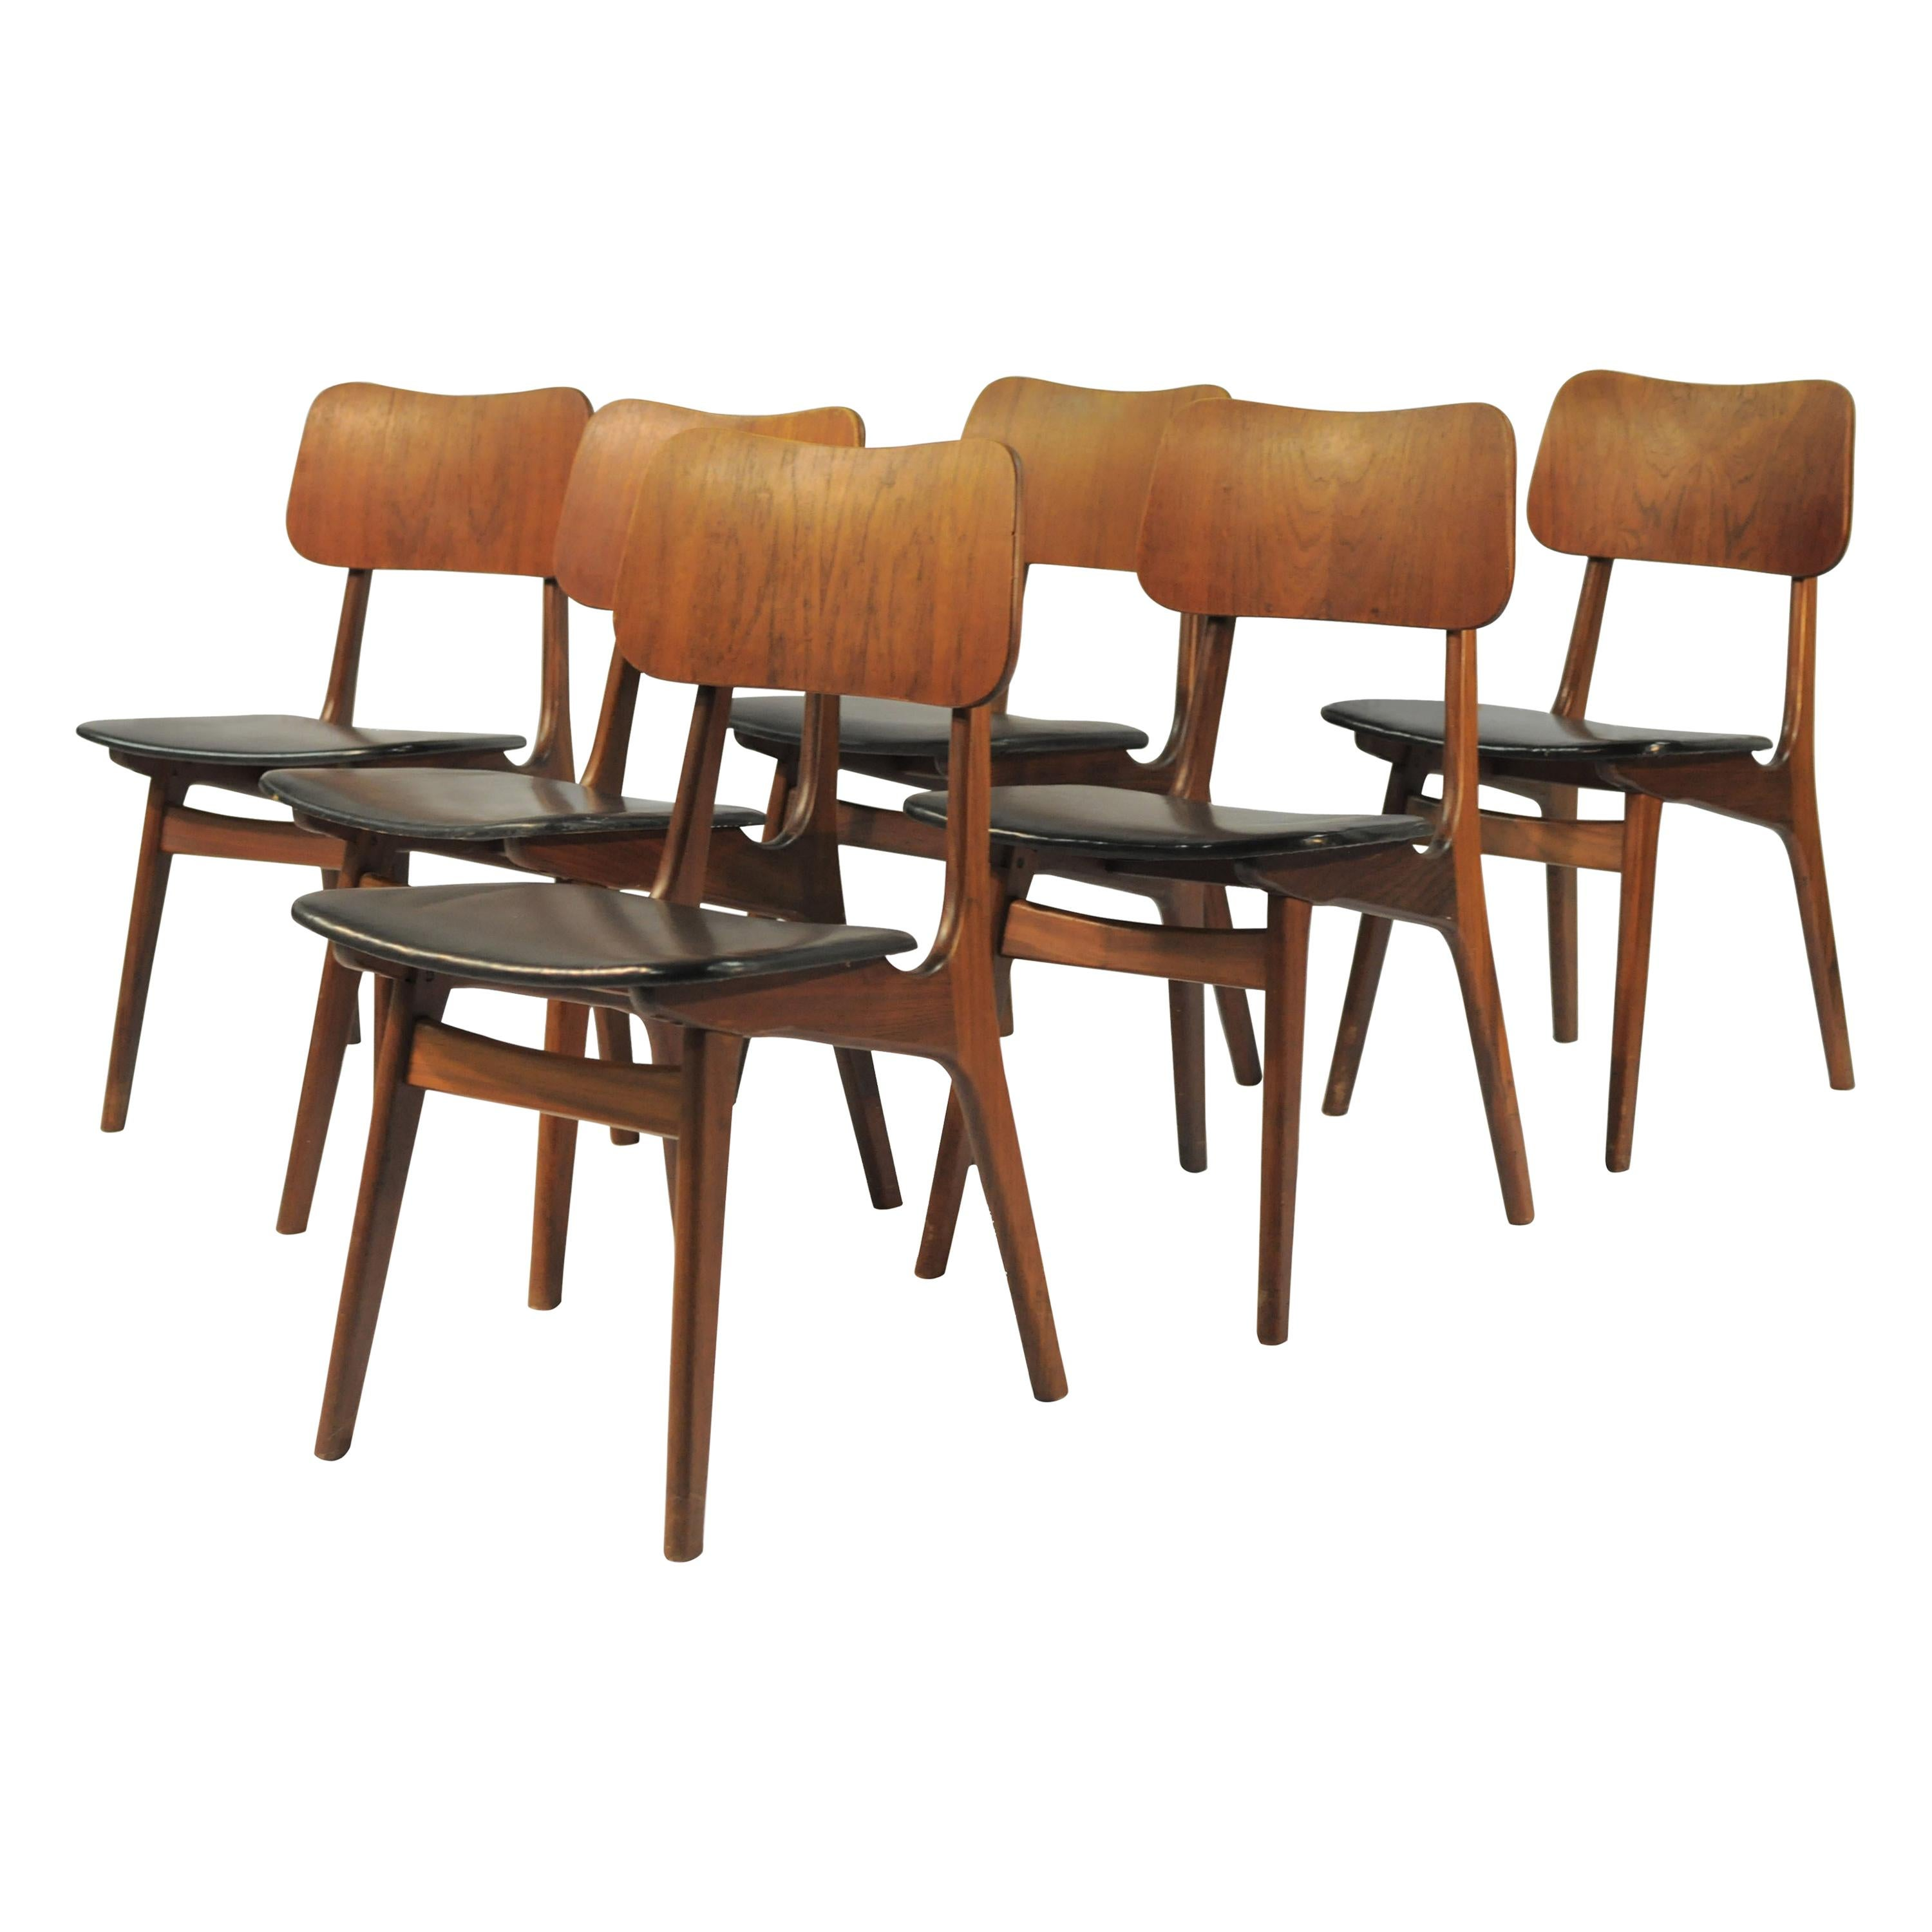 Set of Six Danish Teak Dining Chairs by Boltinge Stole, Inc. Reupholstery